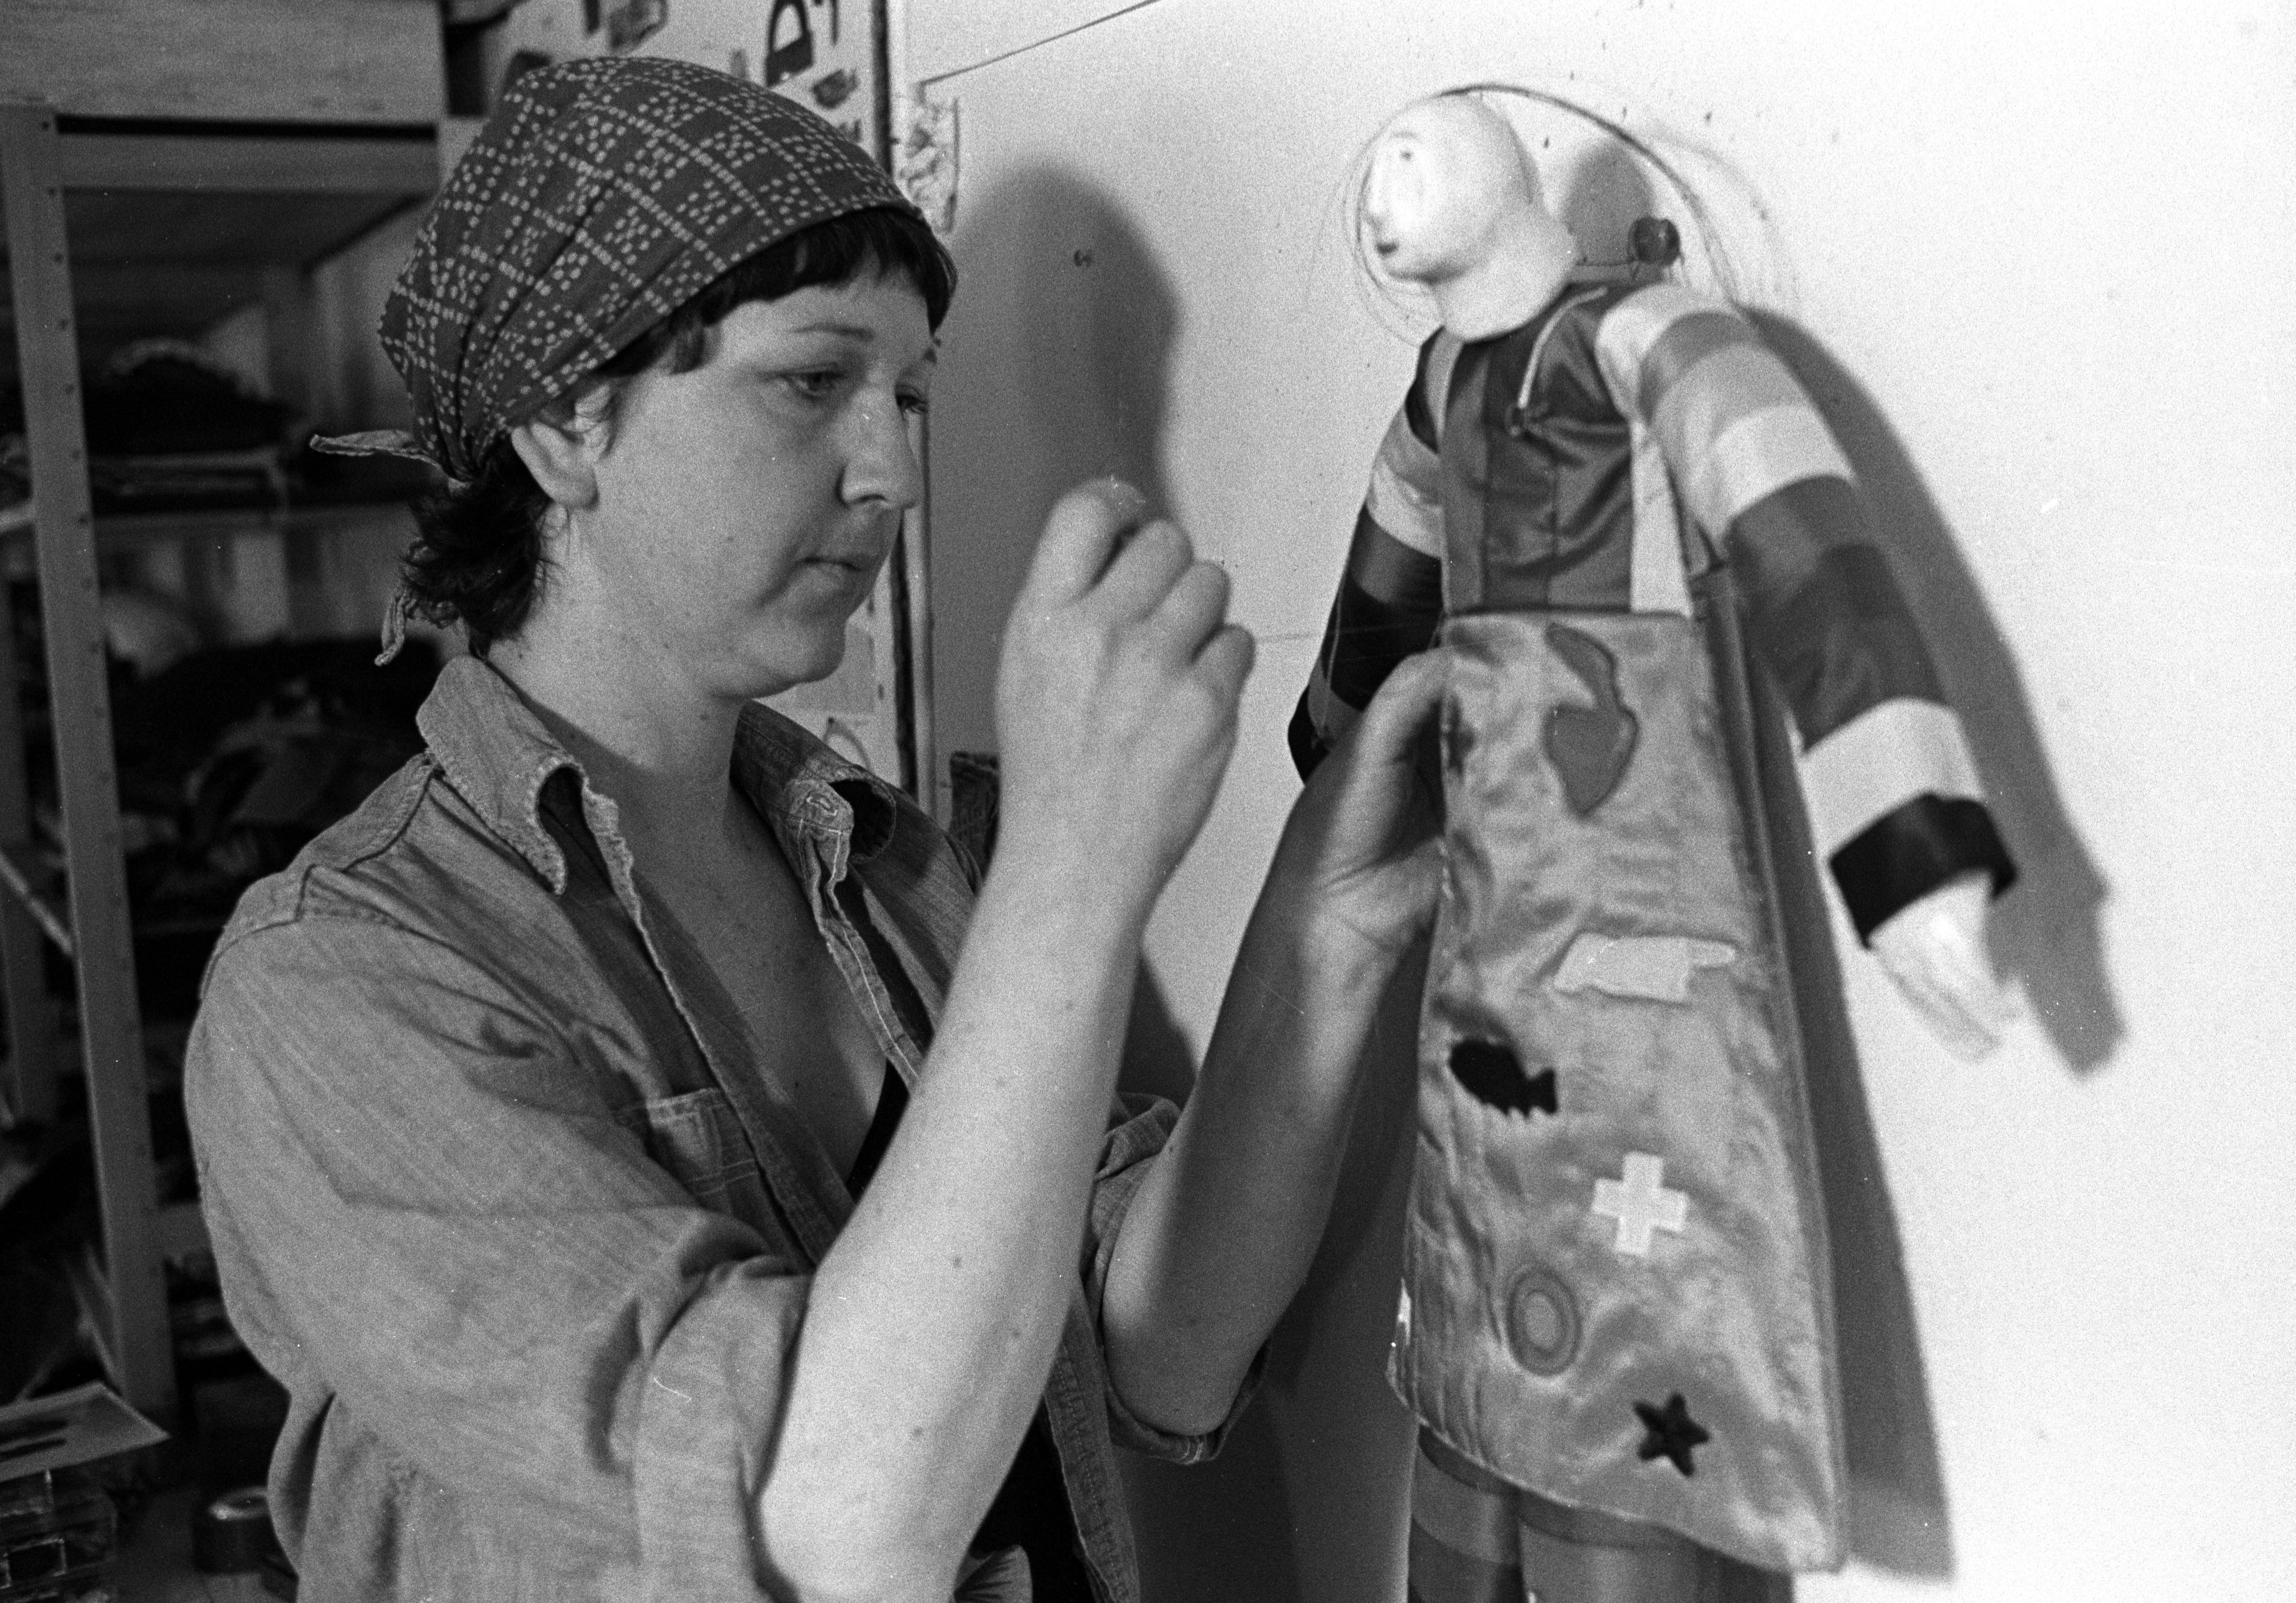 Charla Khanna with One of Her Dolls in Her Ann Arbor Studio, July 1980 image